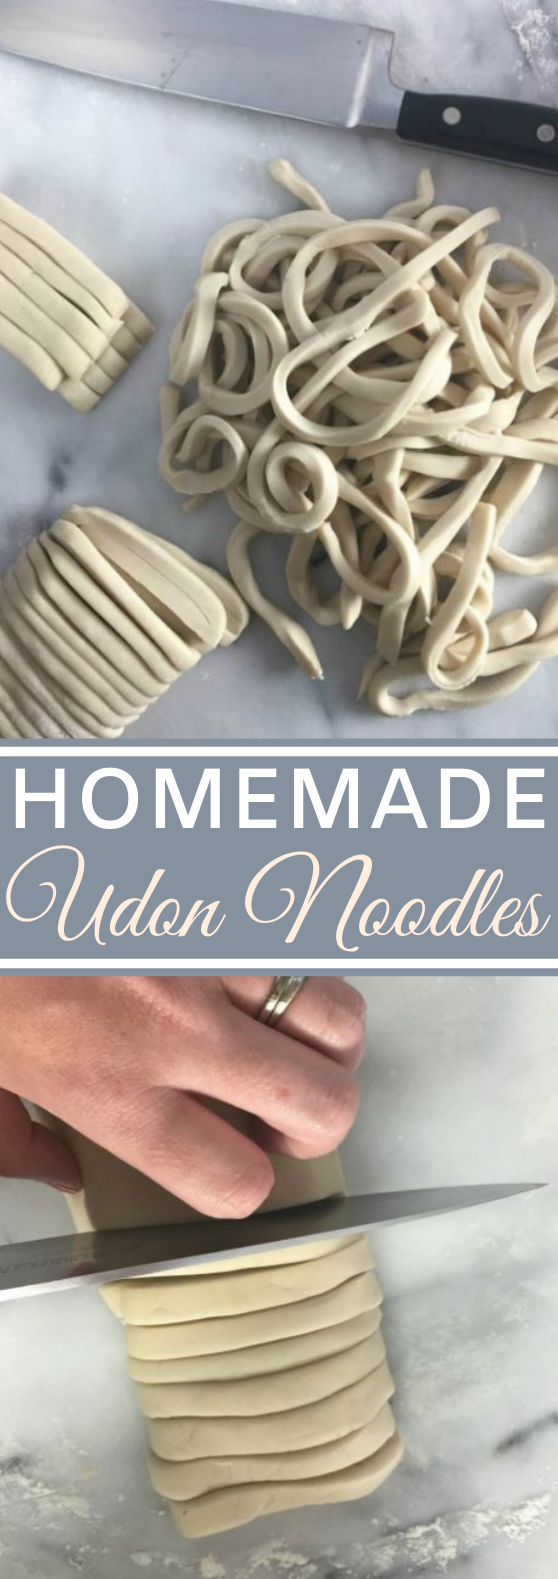 Homemade Udon #noodles #dinner #recipes #japanese #food